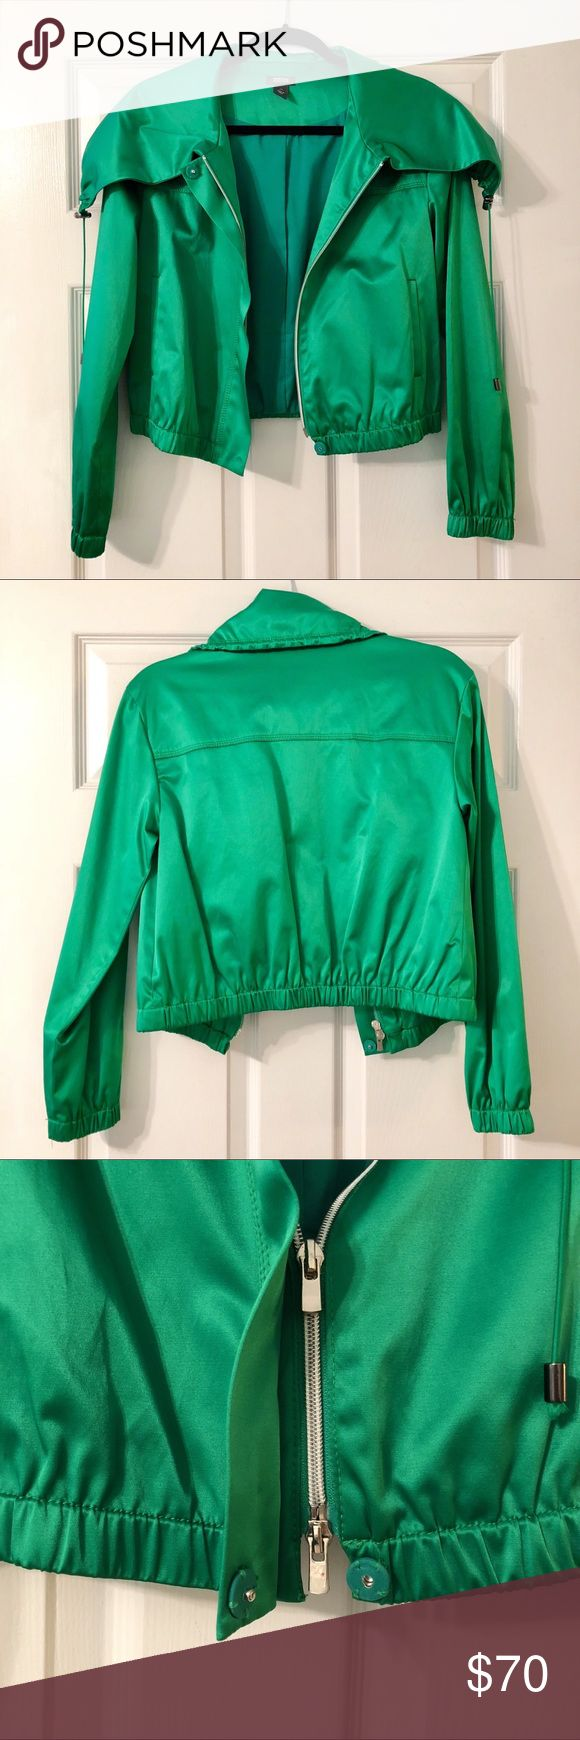 Kenneth Cole Reaction Cropped Green Jacket Kenneth Cole Reaction Cropped Green Jacket. Size XS. Shell: 53% Cotton/44% Polyester/3% Spandex. Lining: 100% Polyester. Condition: Excellent. Large collar is flexible and can be moved/styled. Kenneth Cole Reaction Jackets & Coats